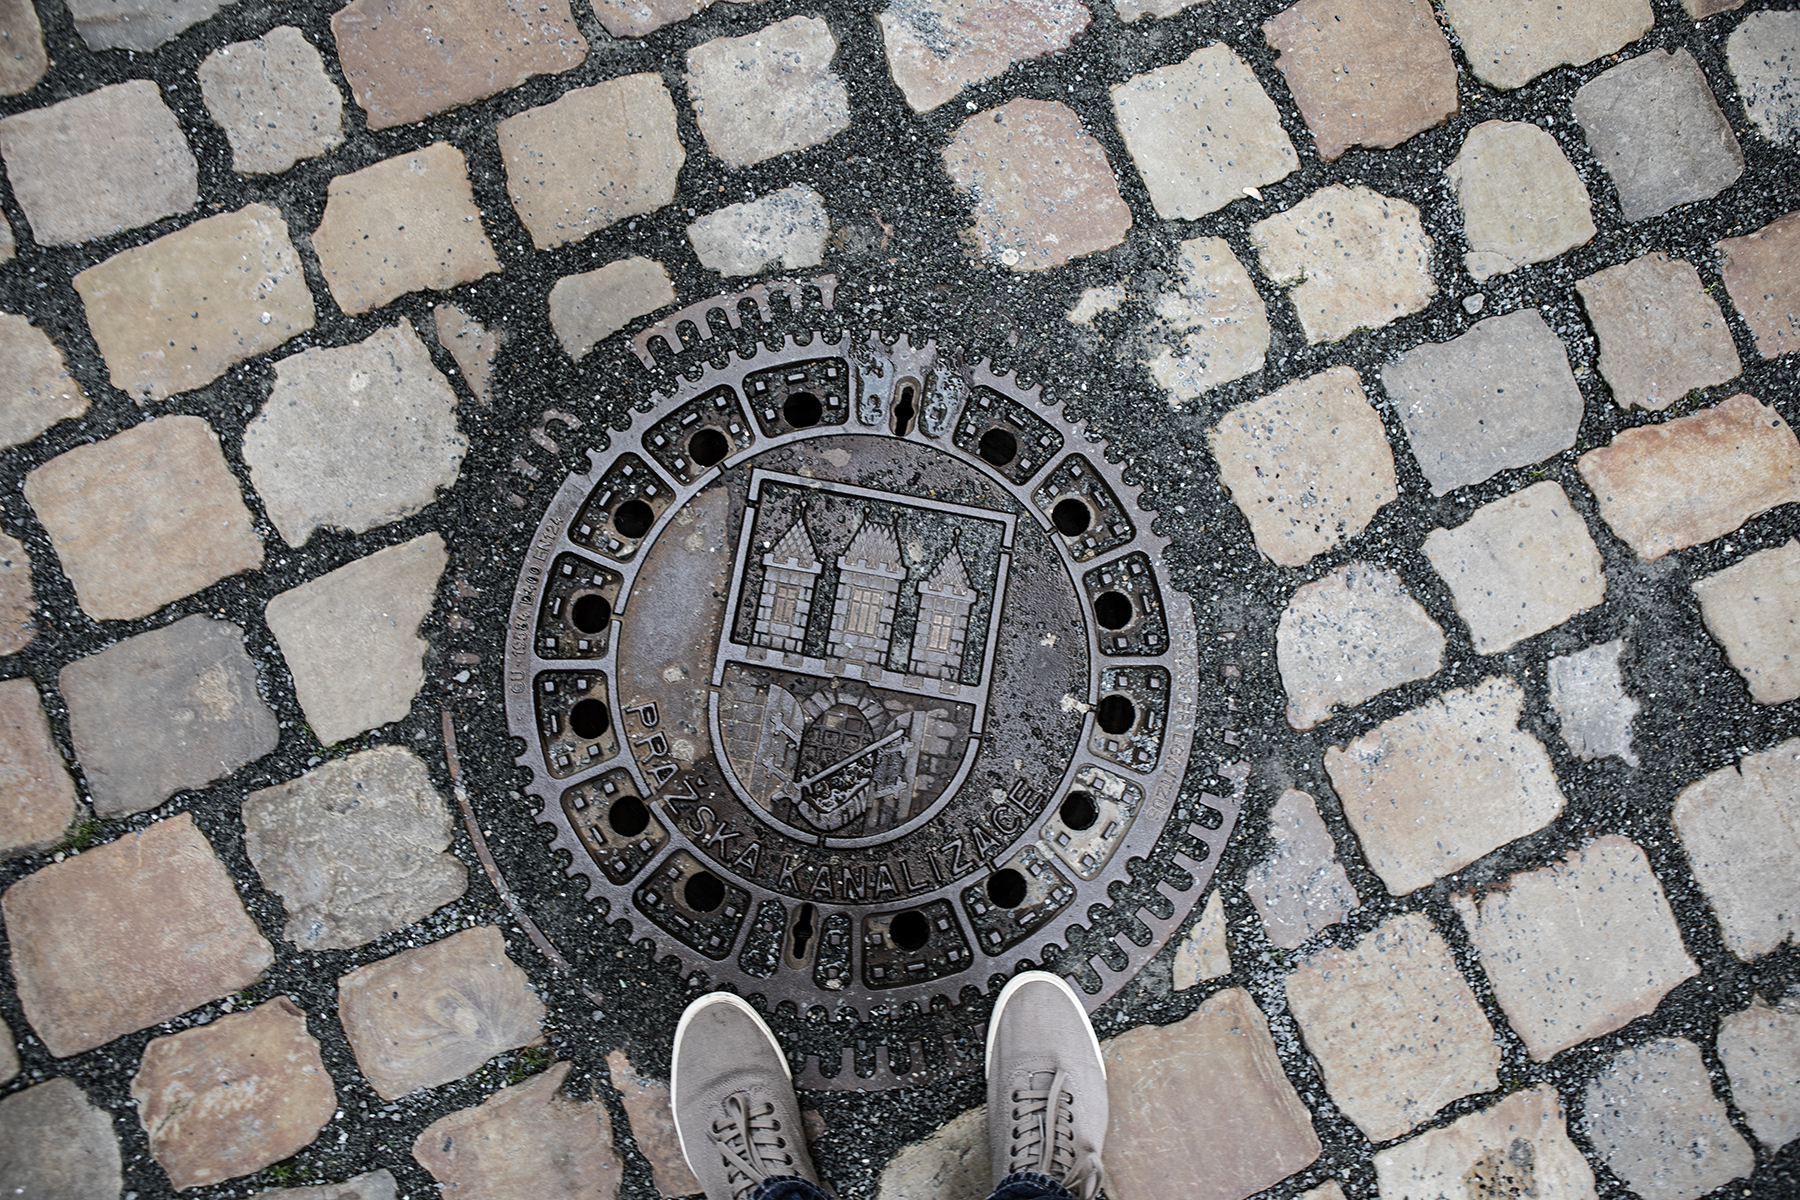 I can't understand why the US doesn't implement better looking sewer covers, Europe knows how to cover a manhole!